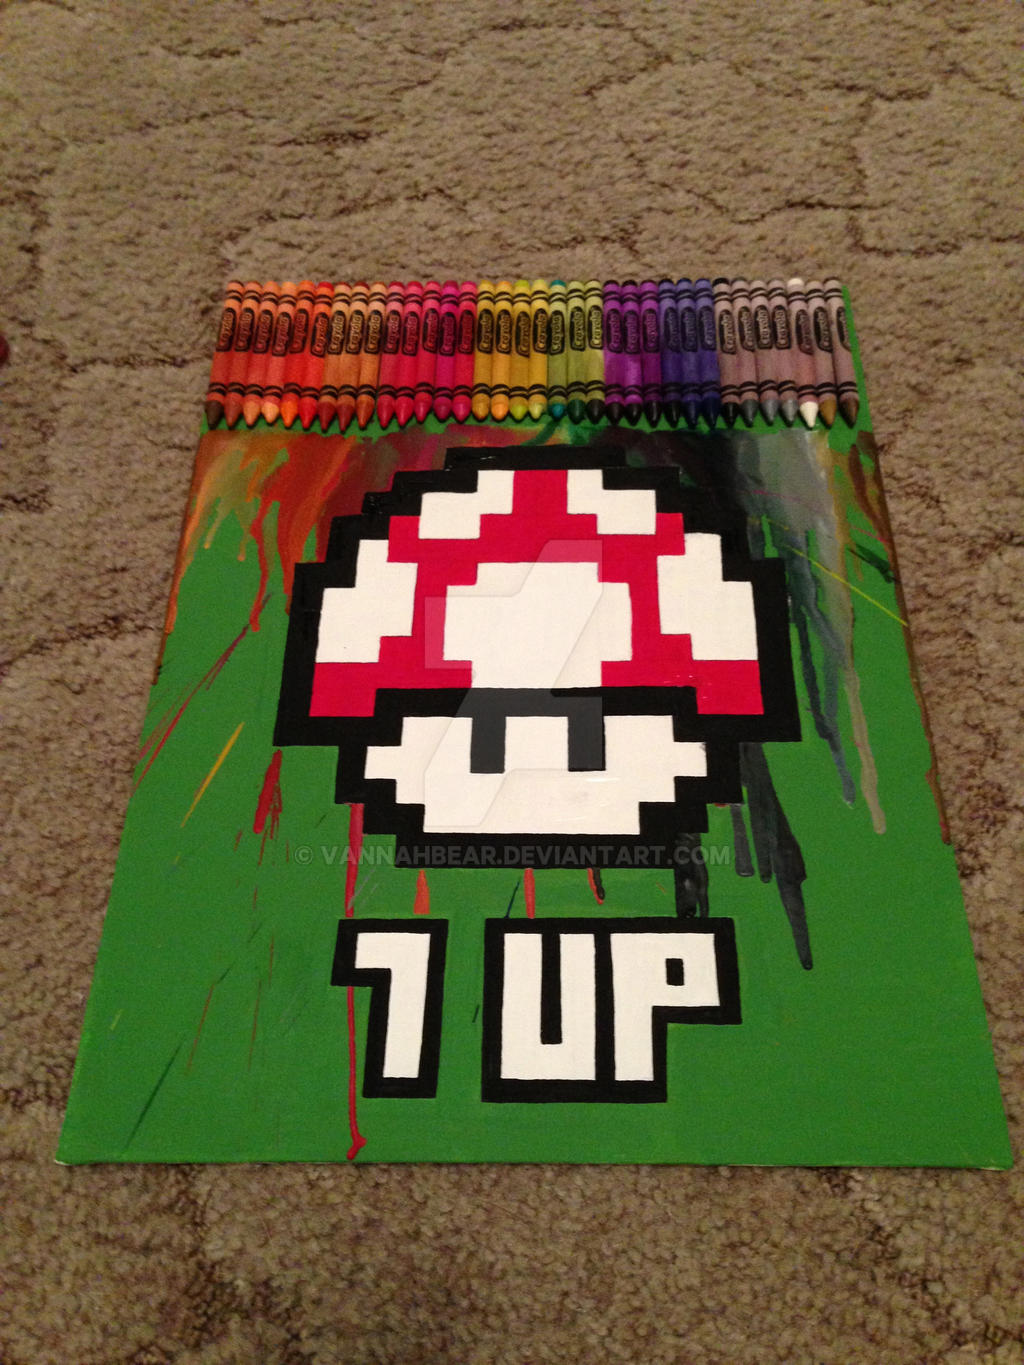 1 UP by VannahBear